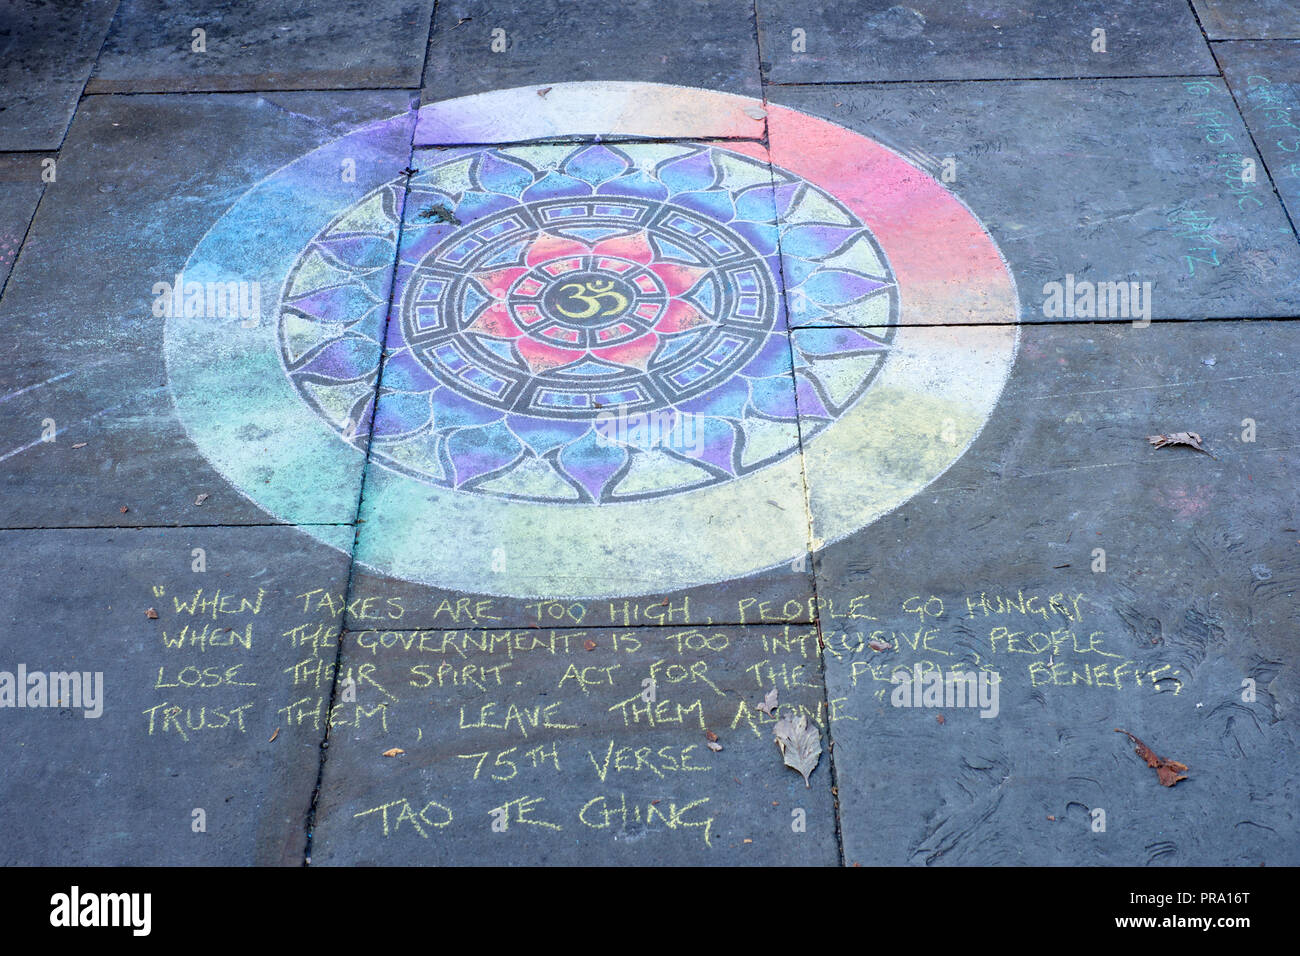 A day old Mandala  with a quote from the 75th verse of the Tao Te Ching which is credited to the 6 century BC sage Laozi. - Stock Image